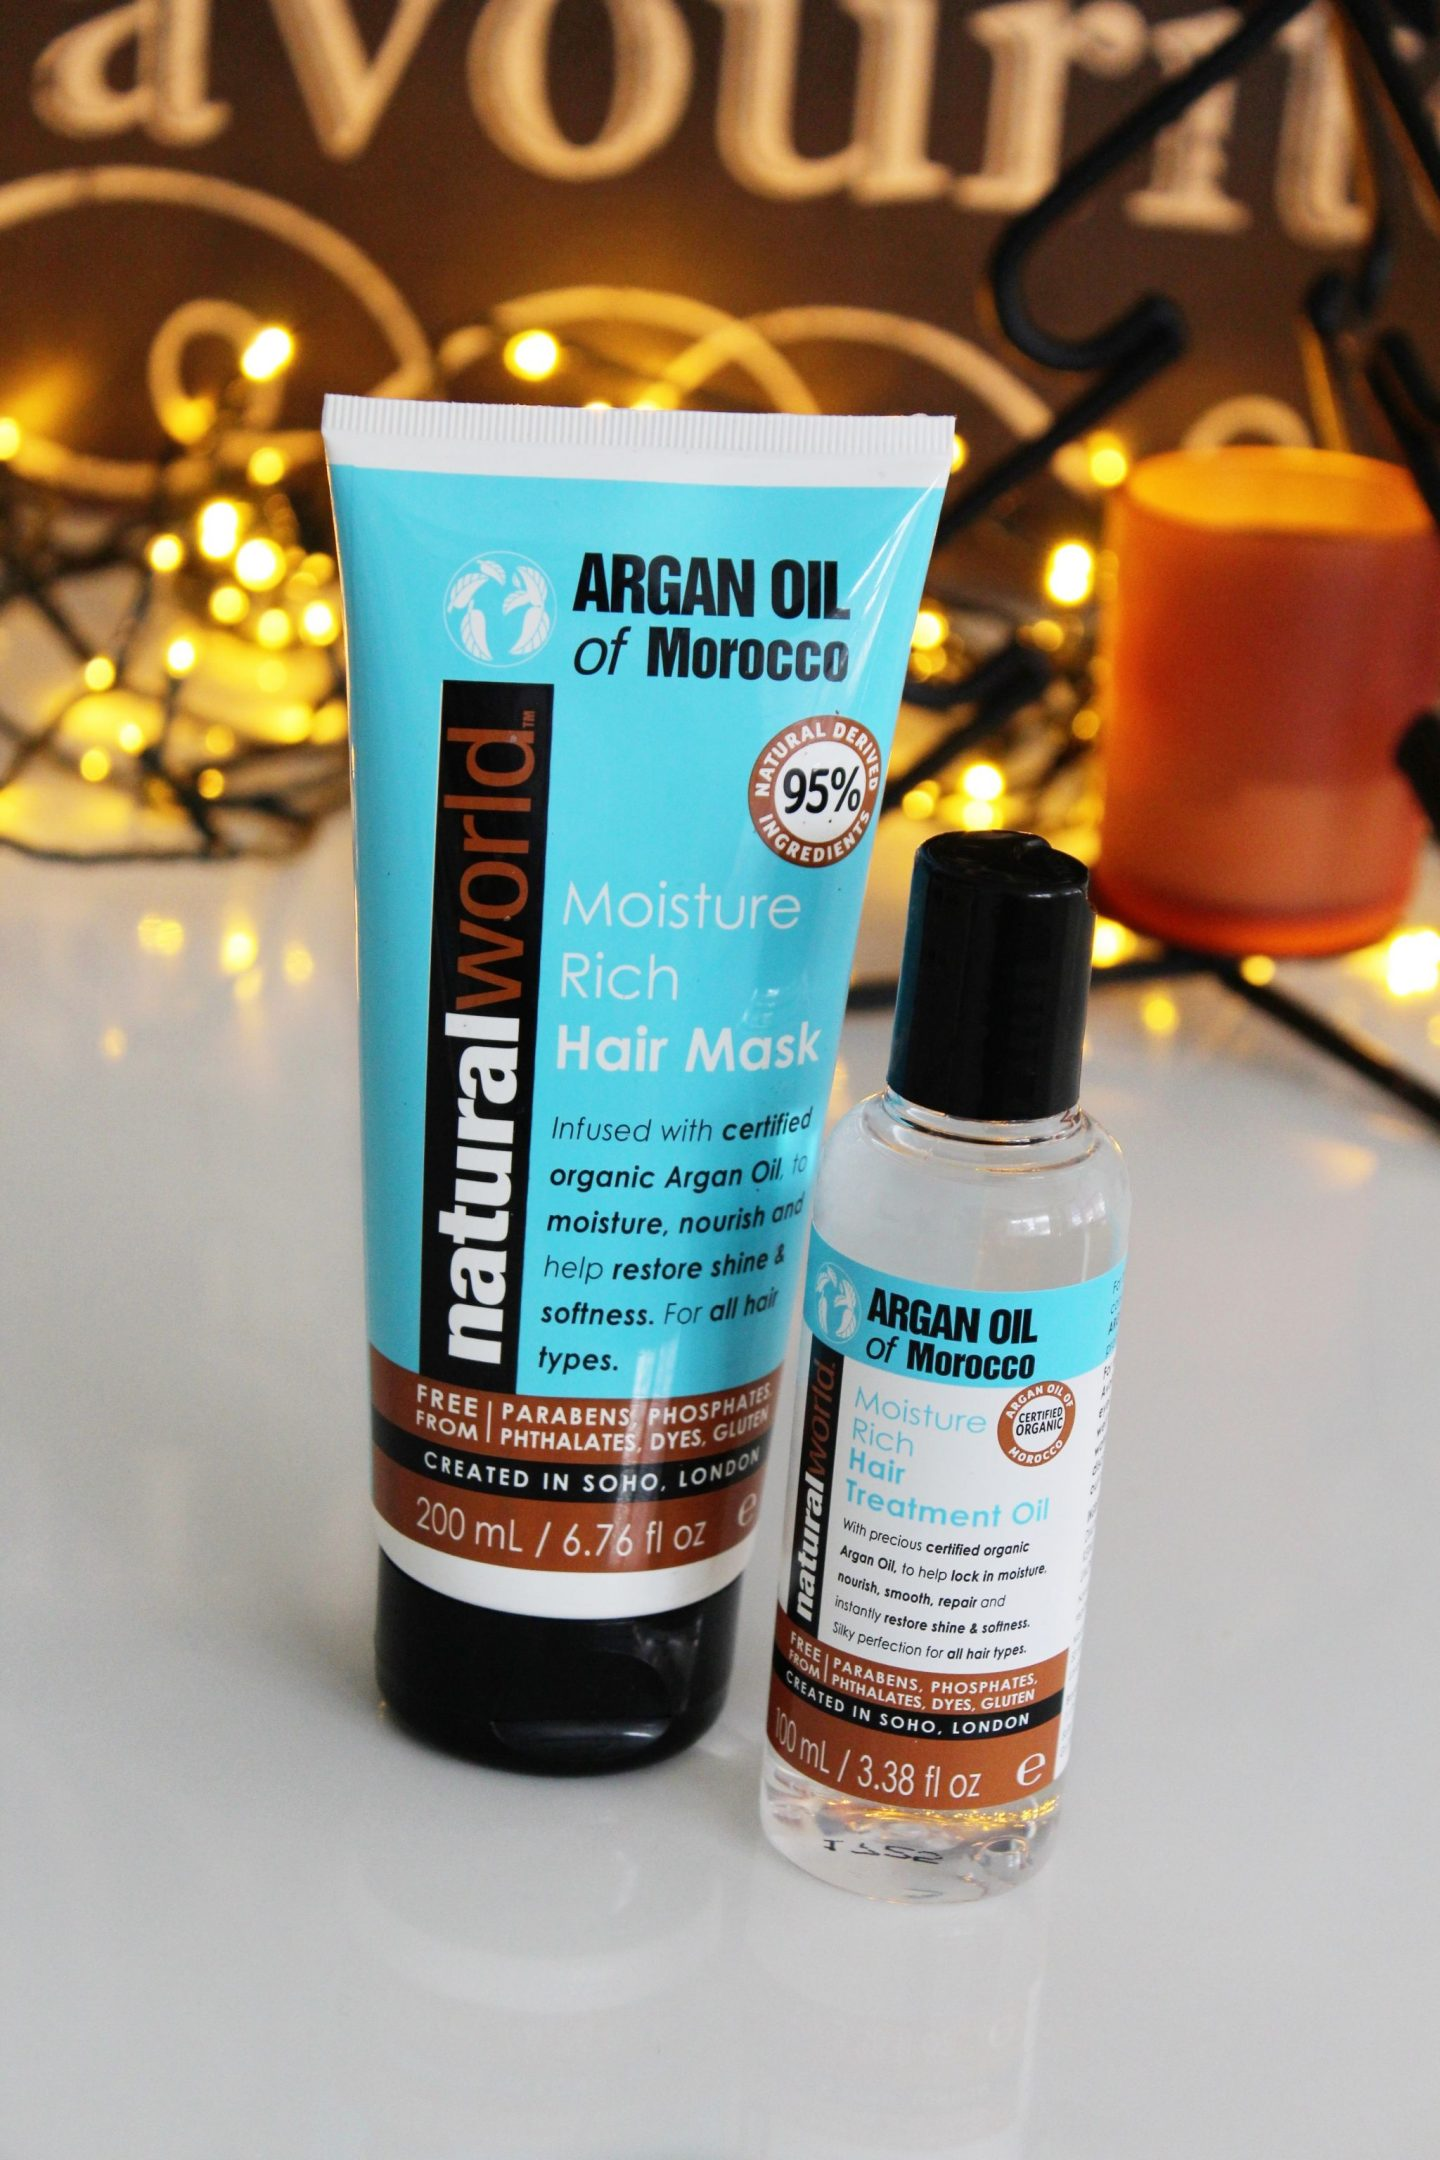 Argan Oil of Morocco hair mask and treatment oil